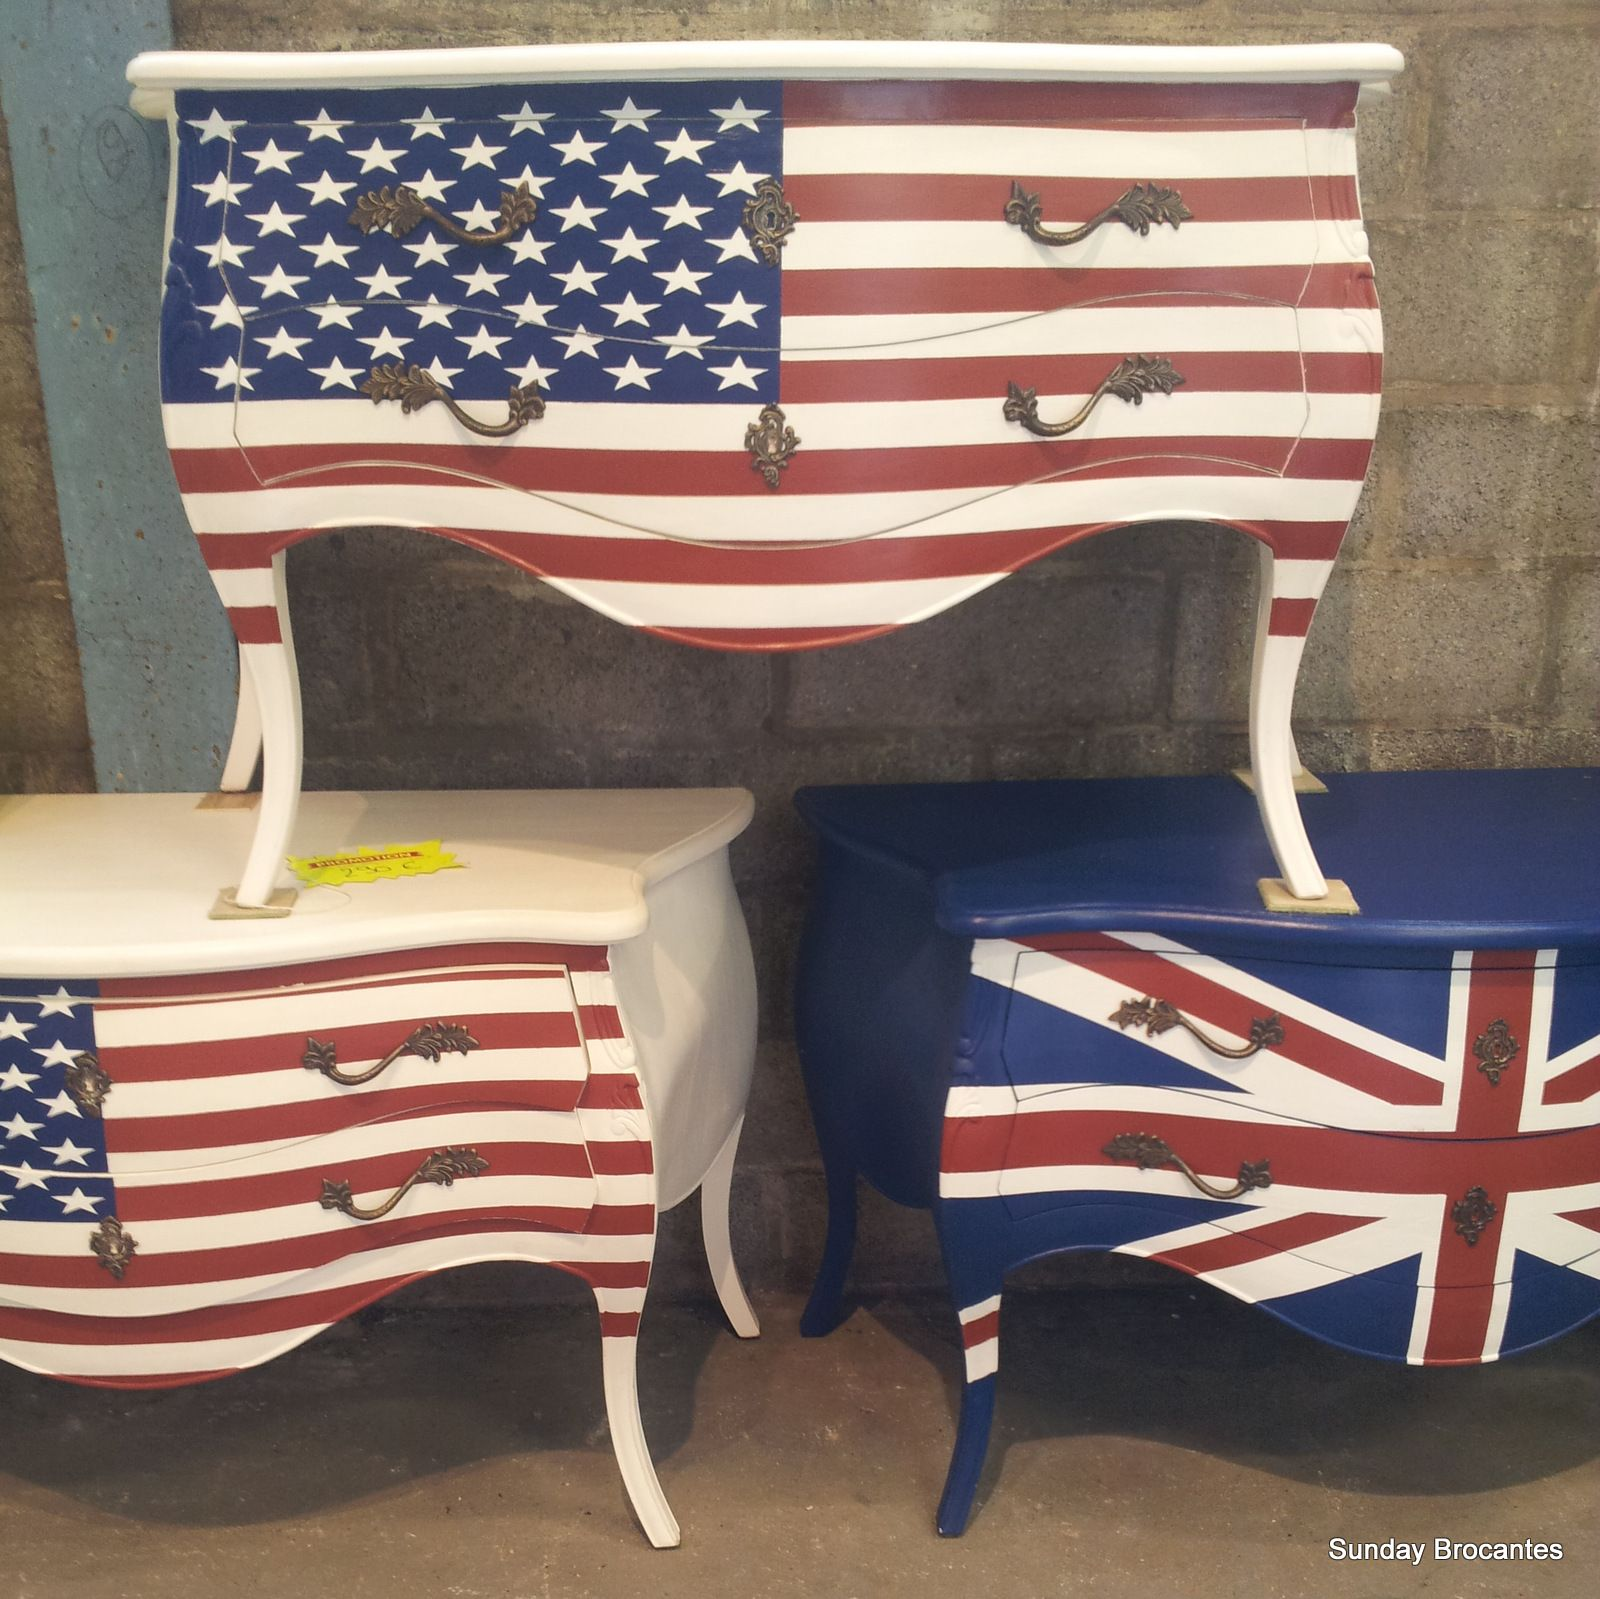 Sunday Brocantes American Flag Painted Furniture